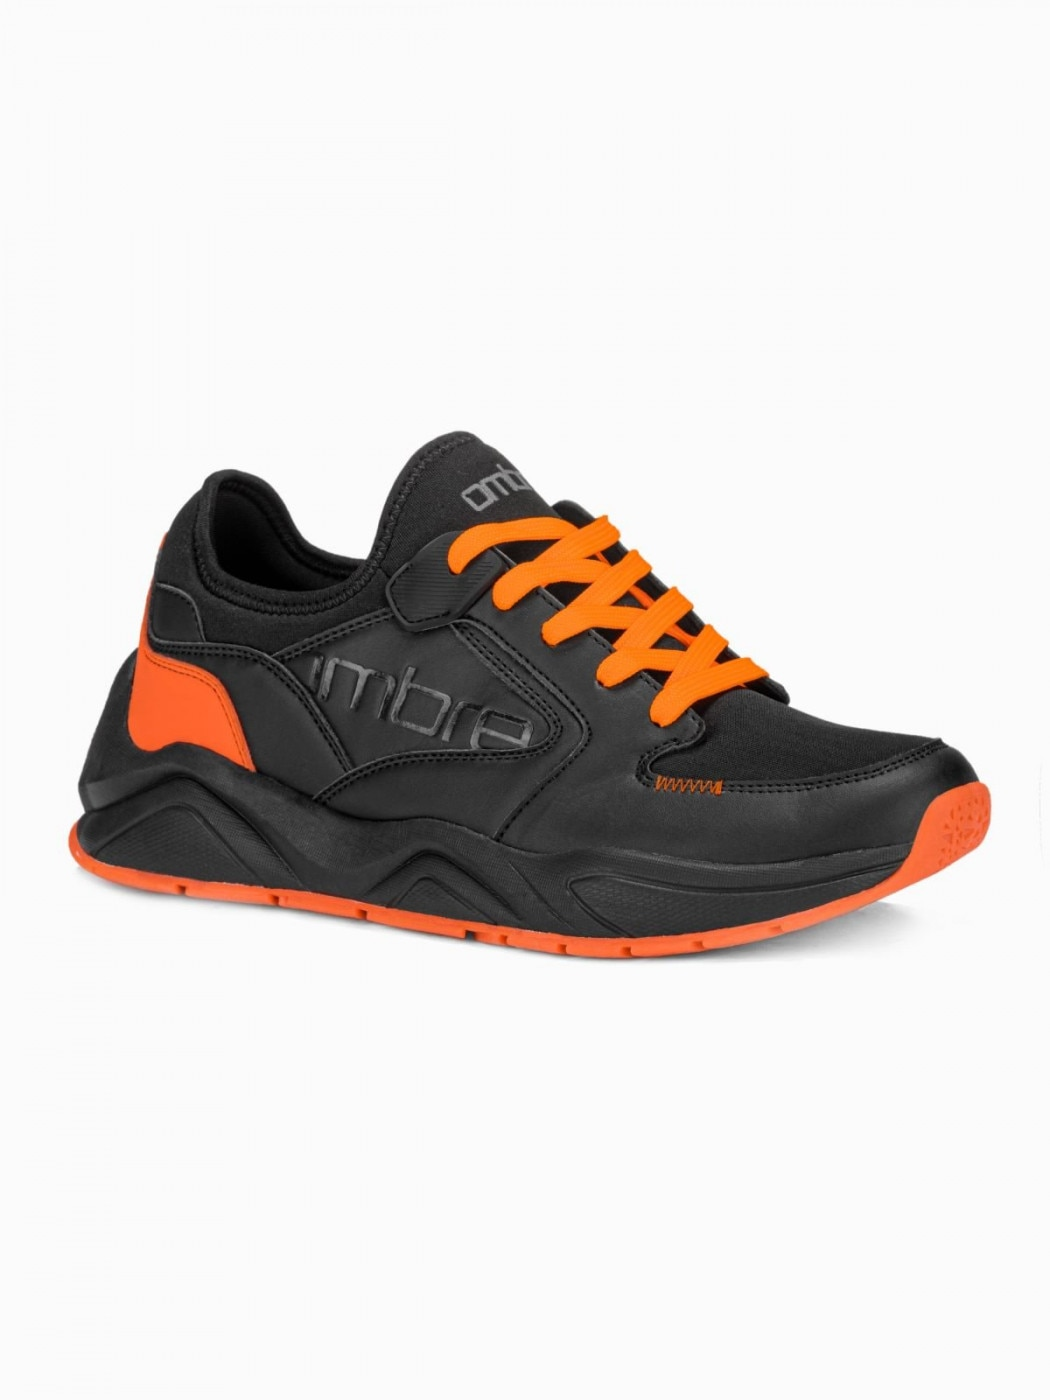 Ombre Clothing Men's casual sneakers T363